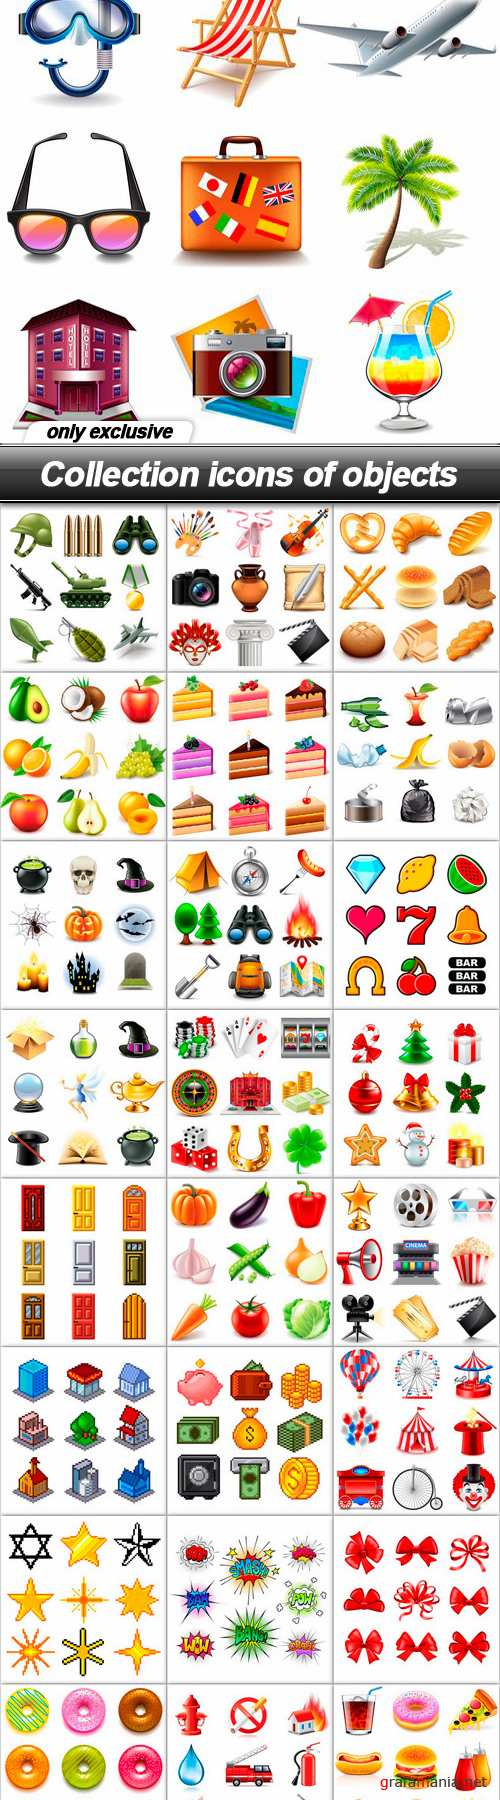 Collection icons of objects